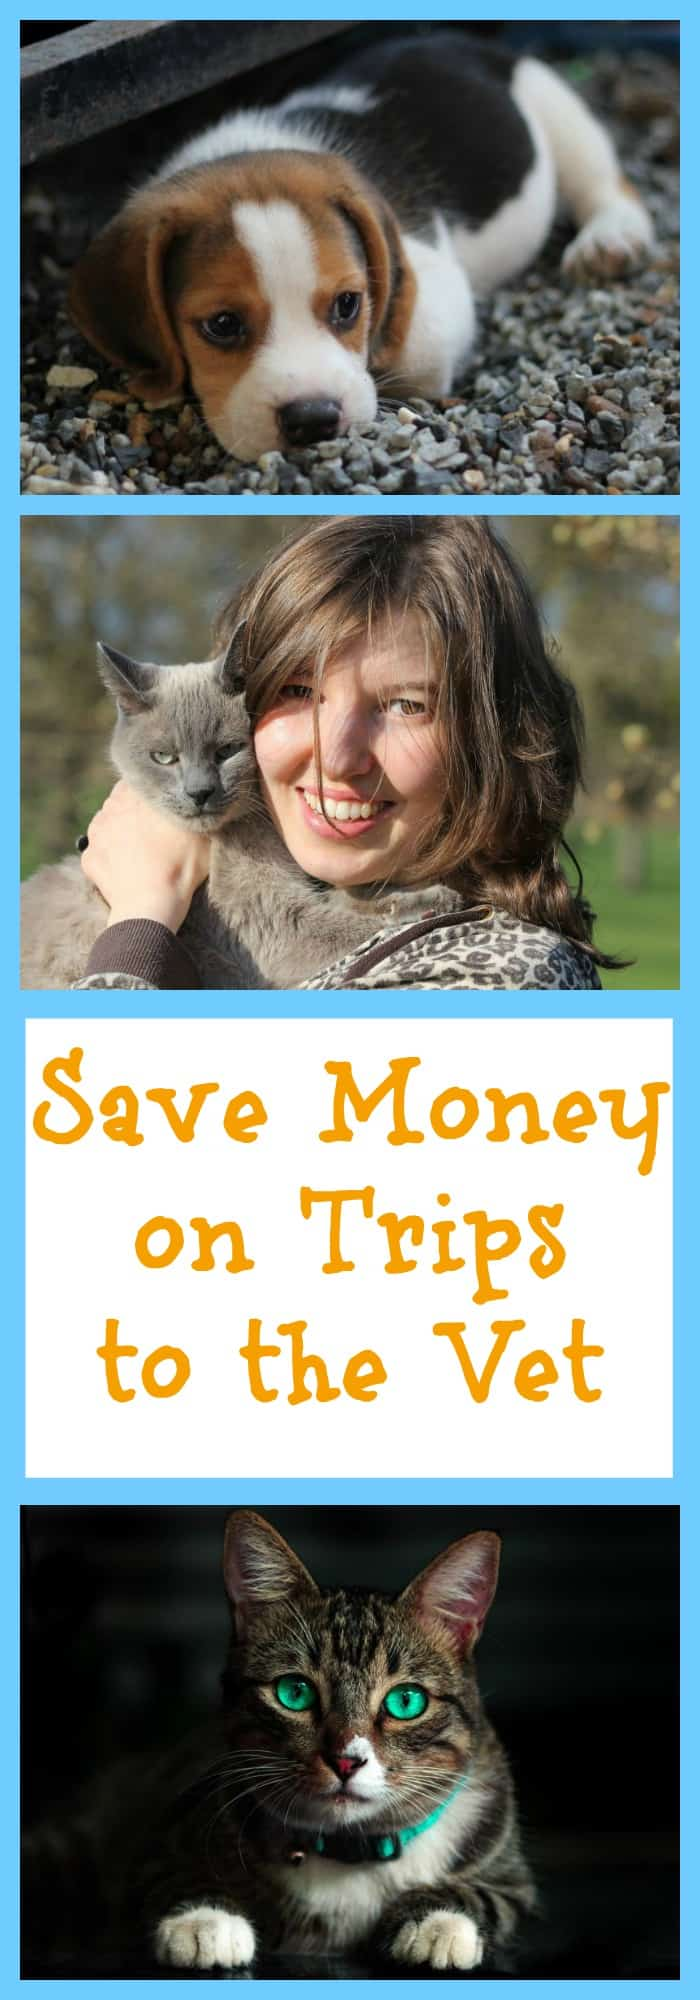 Save Money on Trips to the Vet